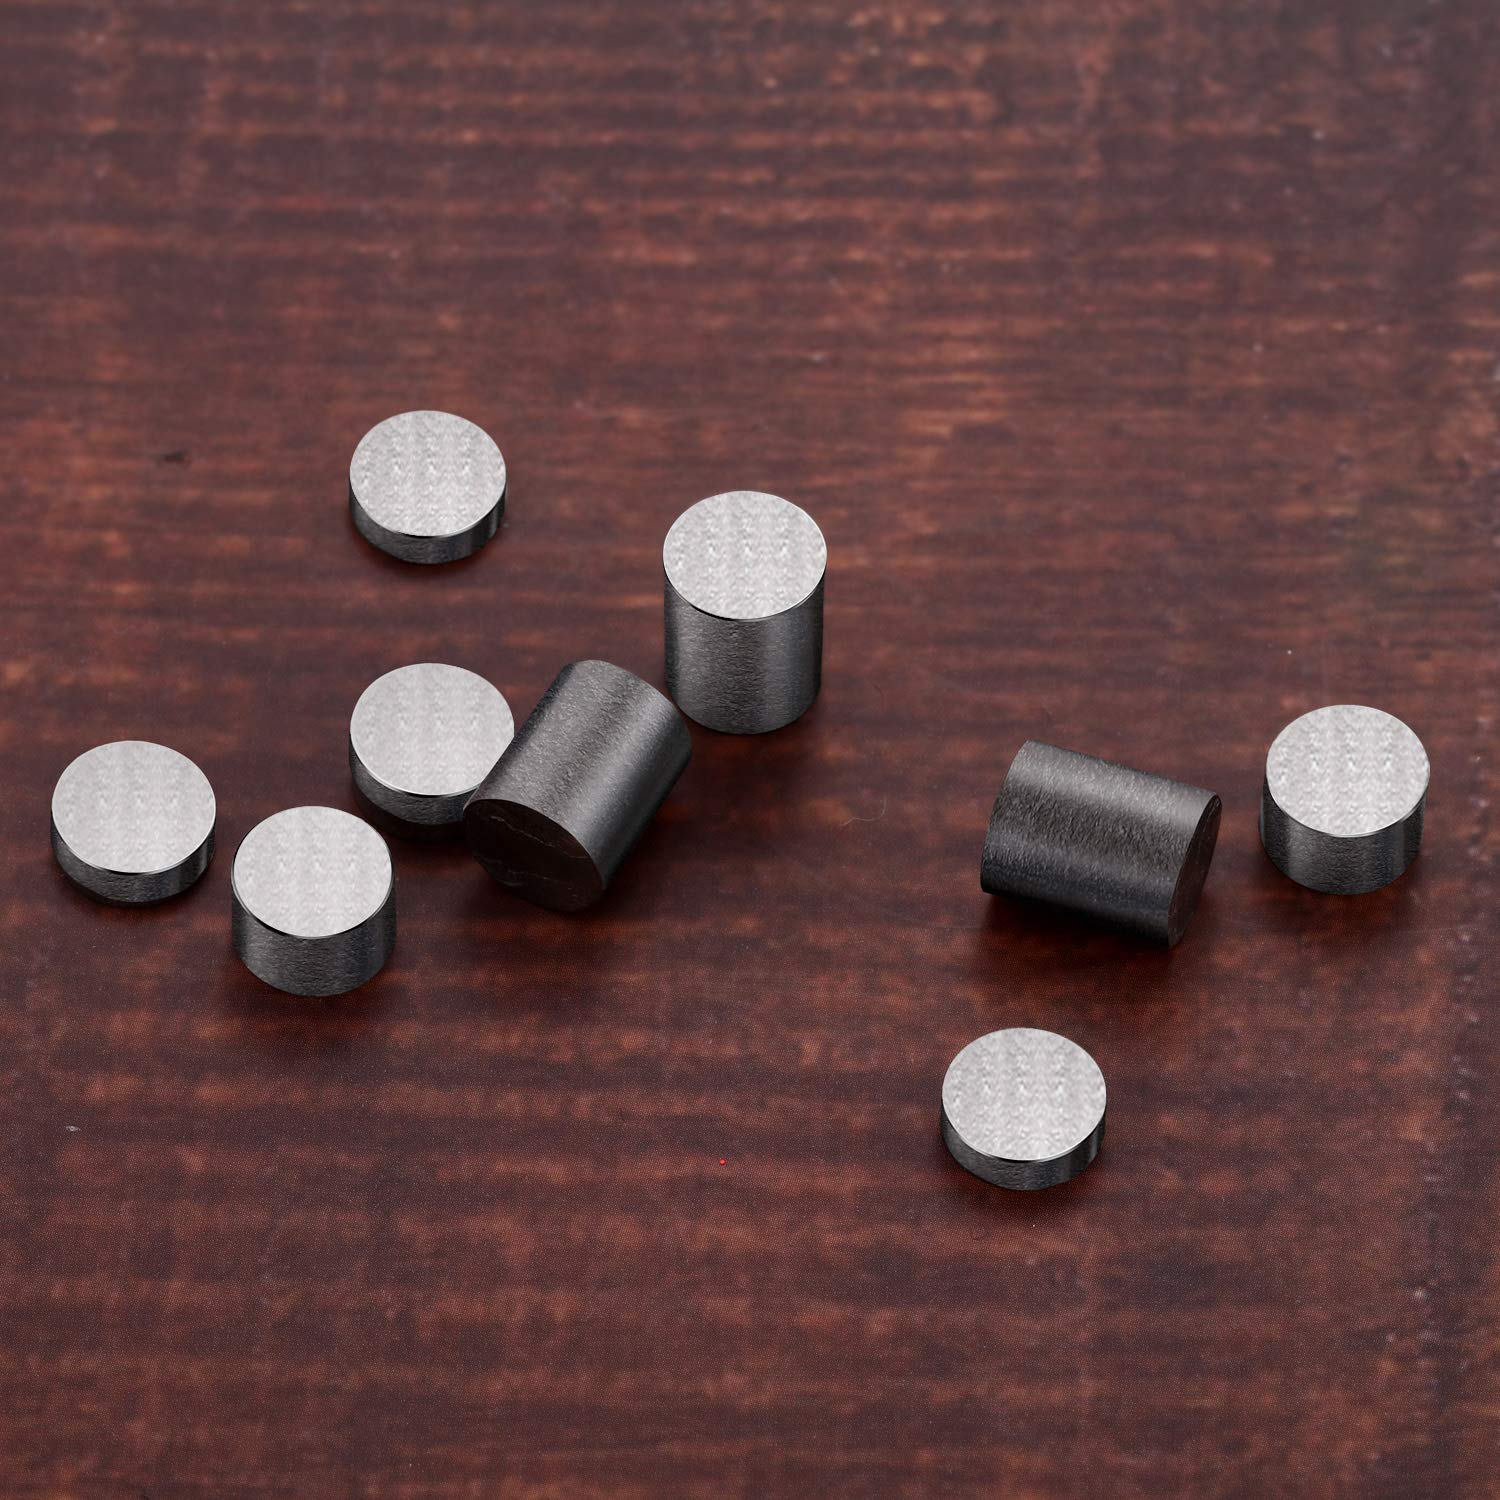 Pinewood Derby Car Weights Tungsten Weights 3.125 Ounce 3//8 Inch Incremental Cylinders Car Incremental Weights 11 Pieces, 4 Size